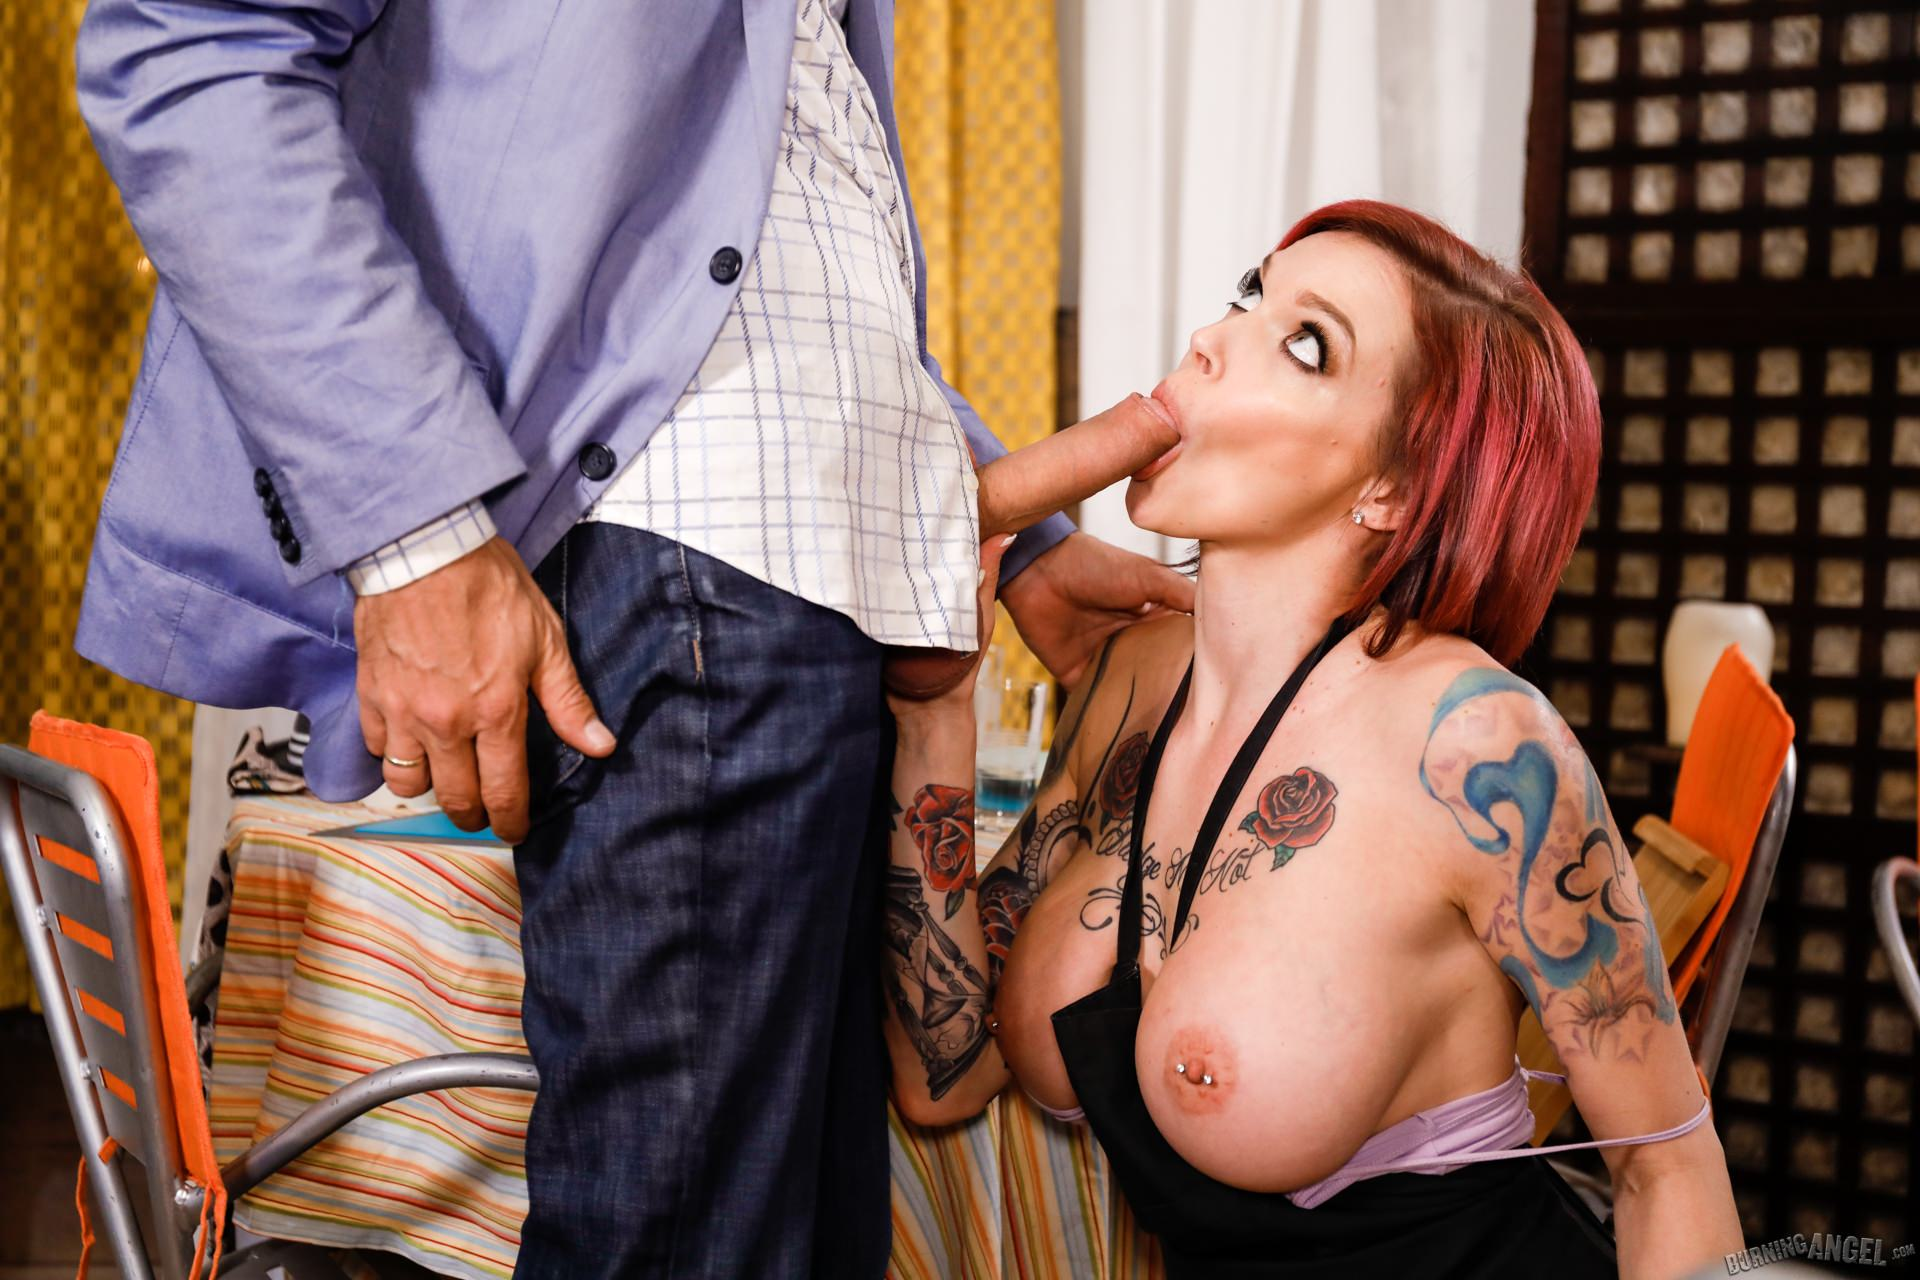 Burning Angel 'Dirty Grandpa Part 3' starring Anna Bell Peaks (photo 40)